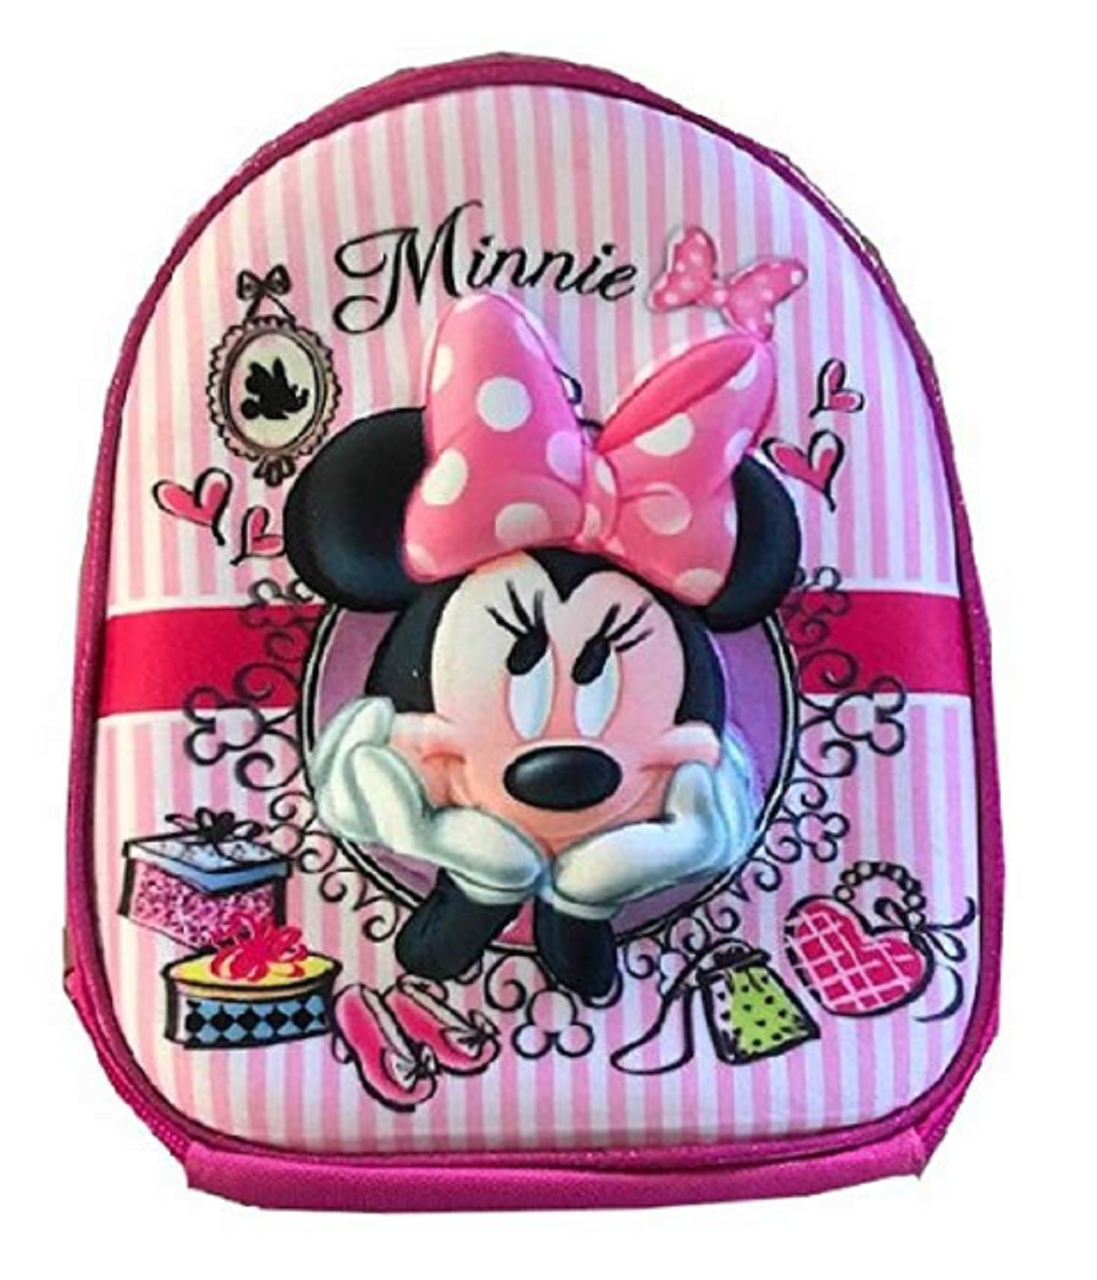 Lunch Box - Minnie Mouse - Insulated - 3D - Gifts